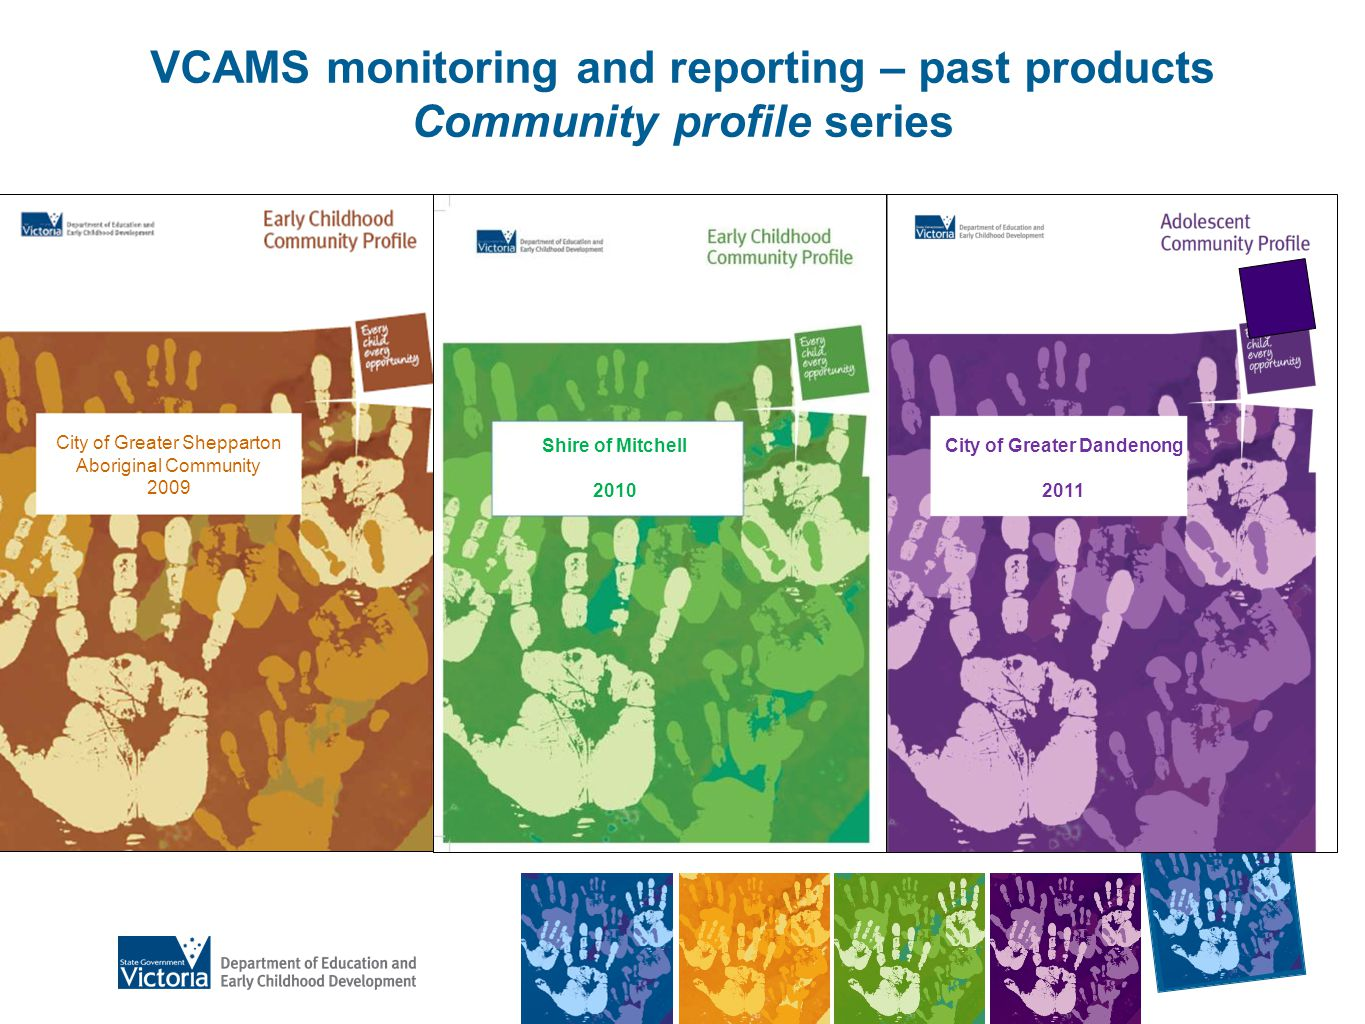 VCAMS monitoring and reporting – past products Community profile series City of Greater Shepparton Aboriginal Community 2009 Shire of Mitchell 2010 City of Greater Dandenong 2011